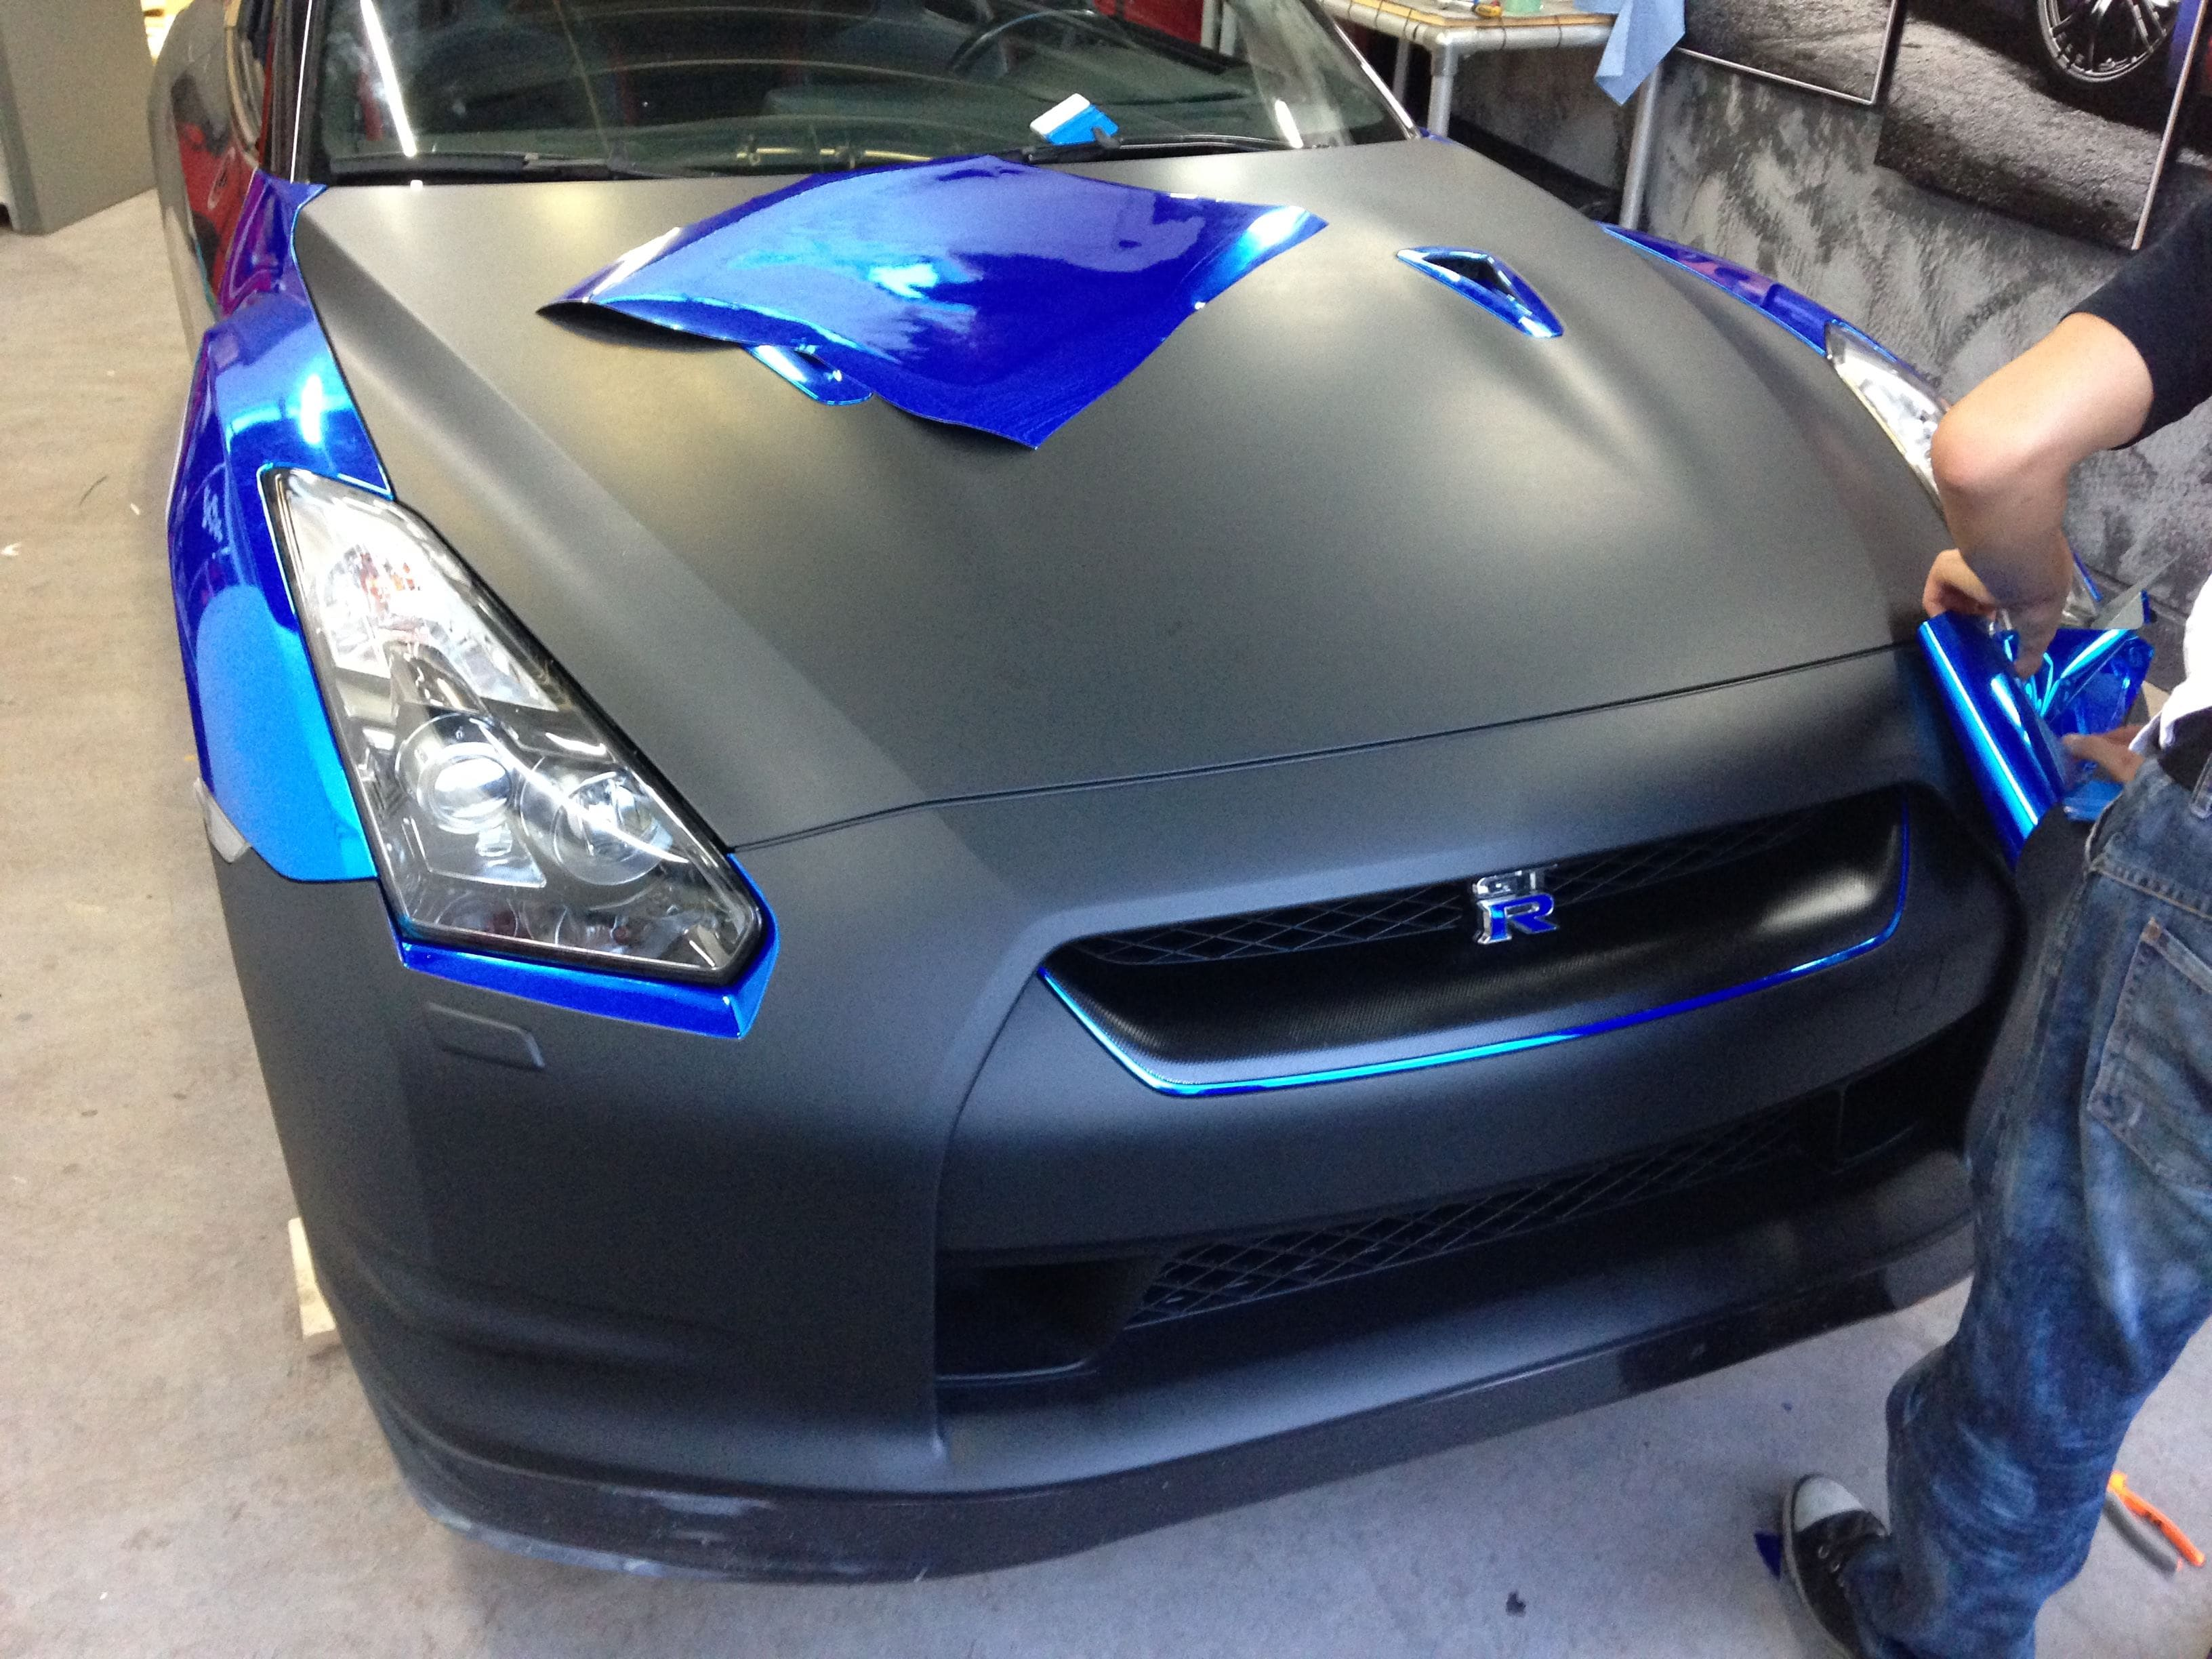 Nissan GT-R met Blue Chrome Wrap, Carwrapping door Wrapmyride.nu Foto-nr:6451, ©2020